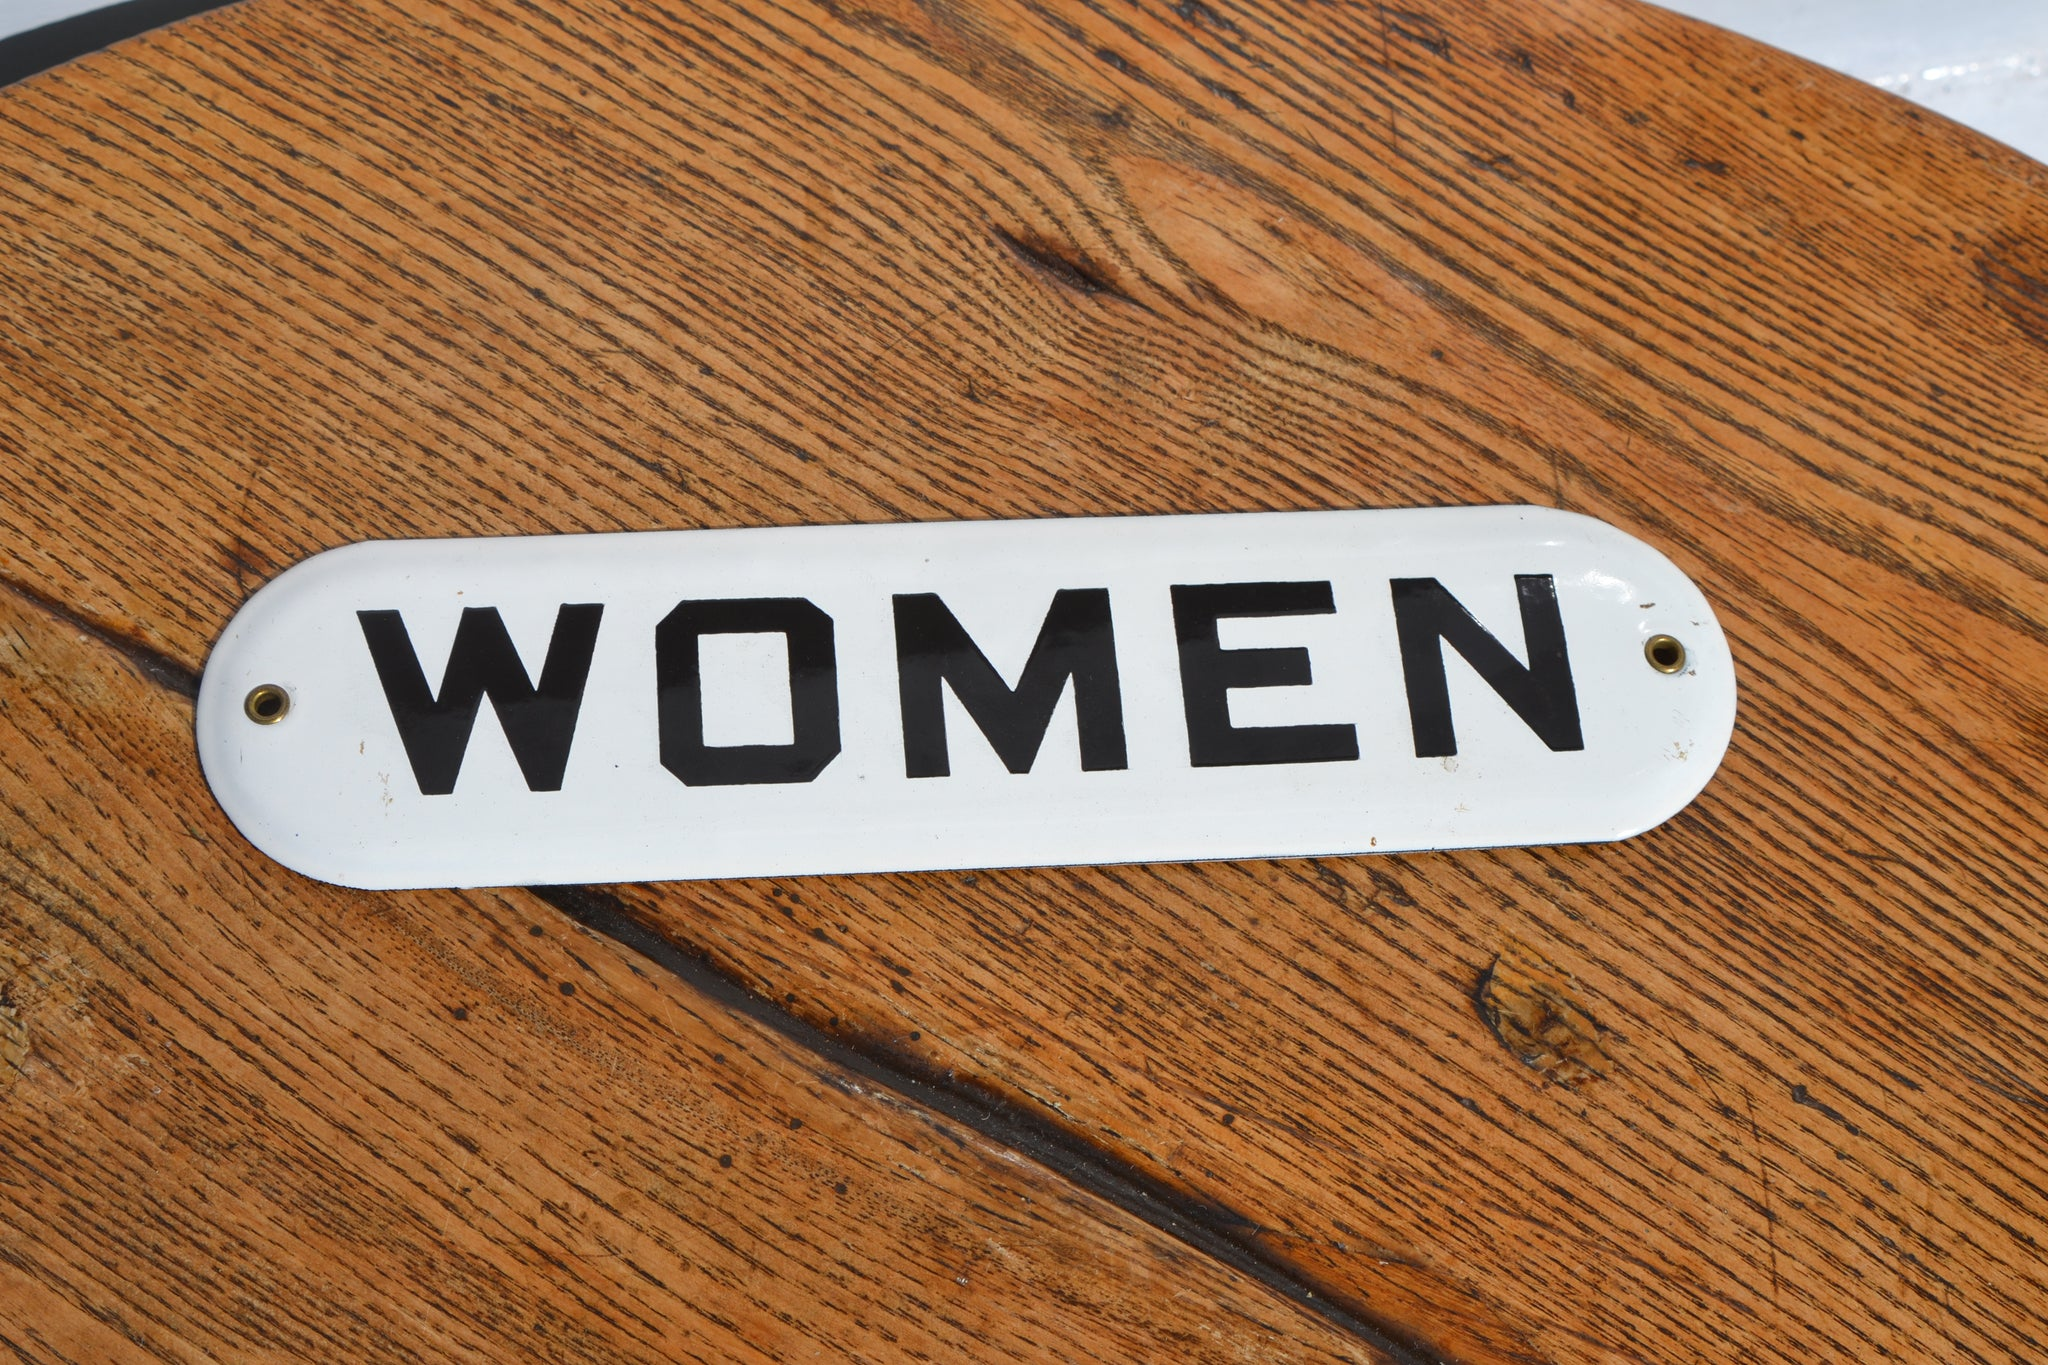 A 'Women' enamel door sign